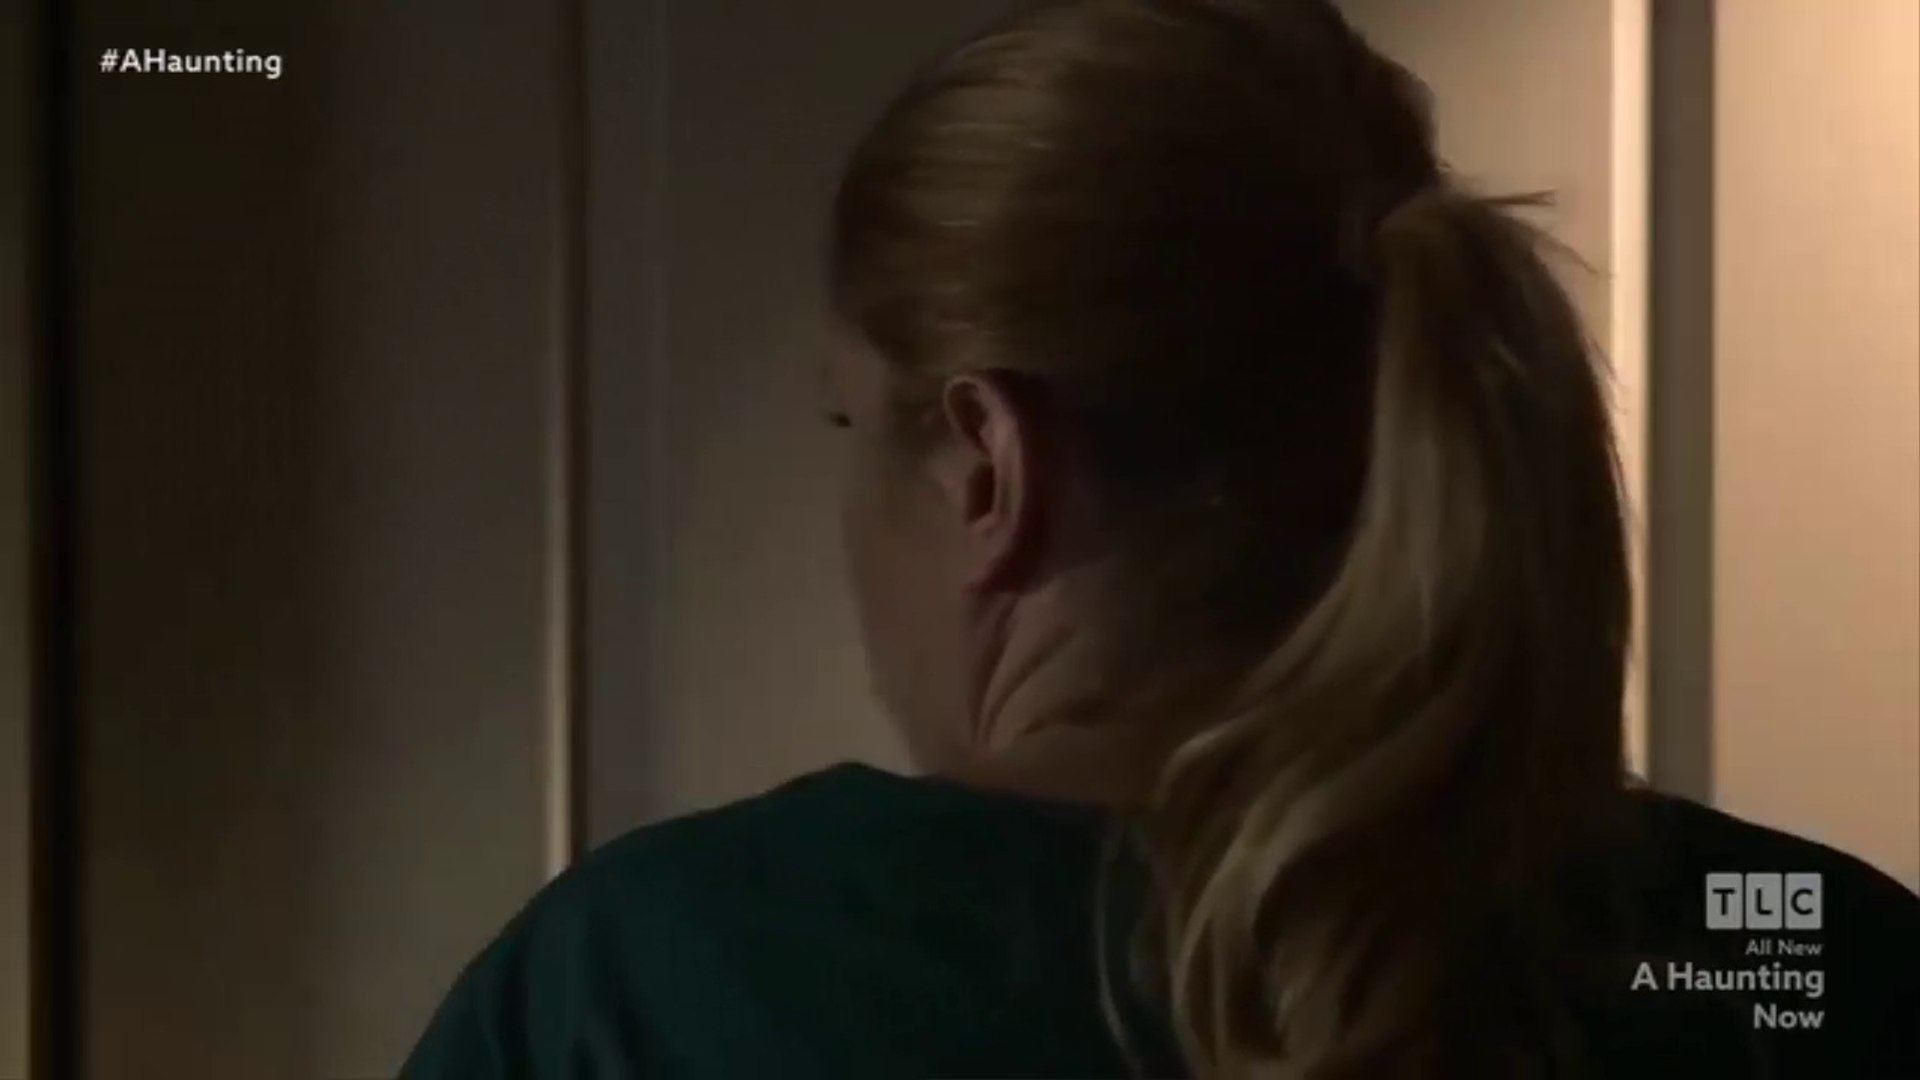 A Haunting S09E11 Face of Evil | A Haunting Season 9 Episode 11 Face of Evil